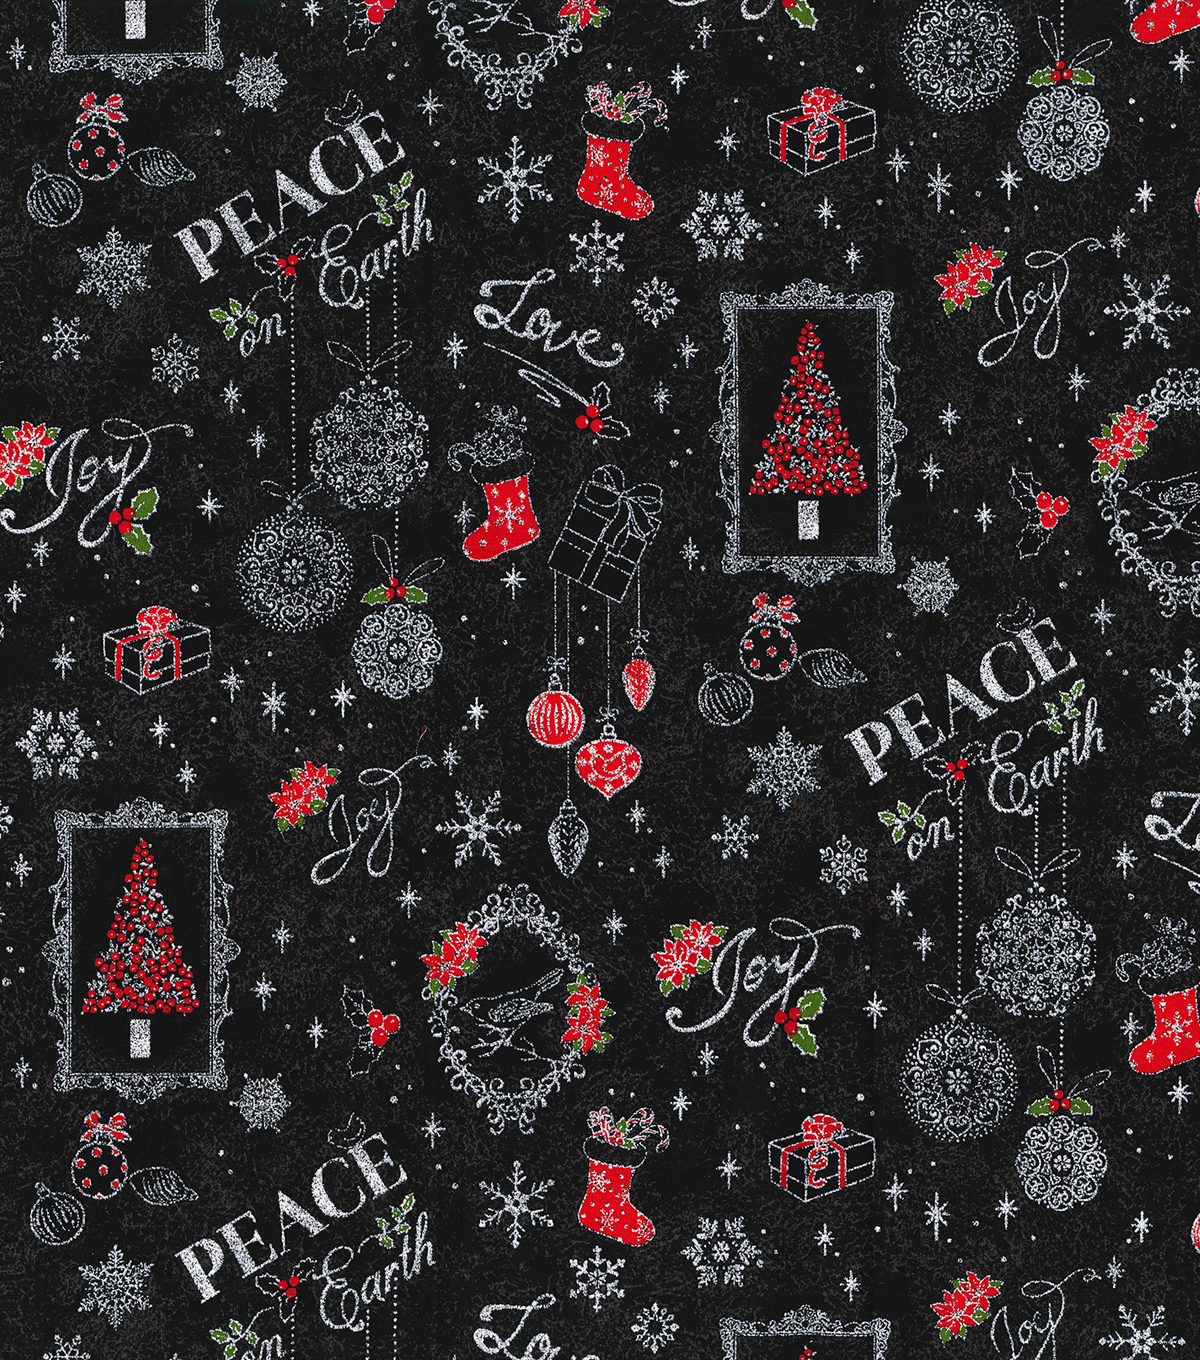 Christmas Cotton Fabric-Stamped Holiday Decorations